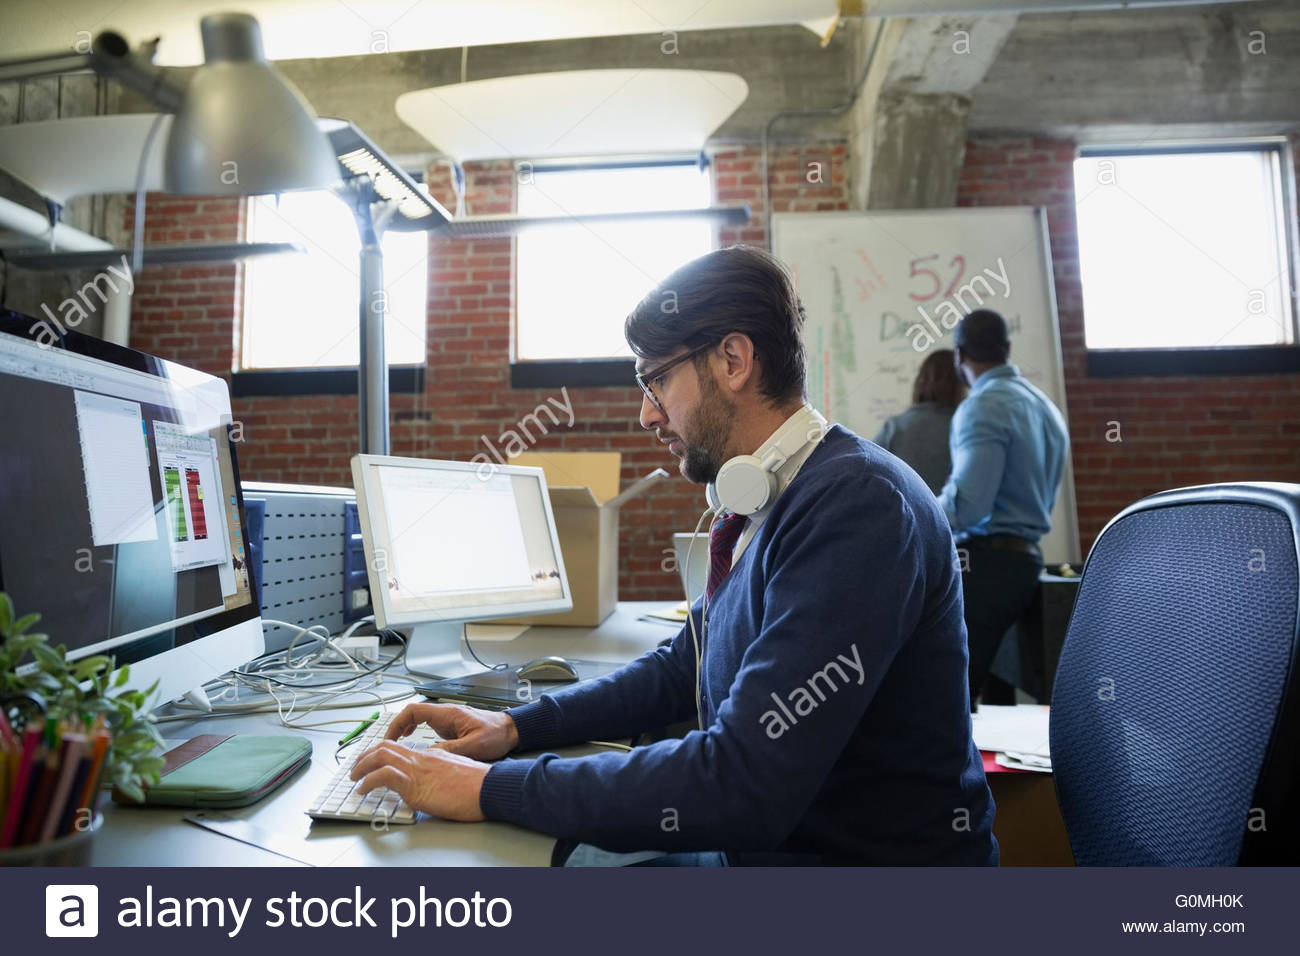 Creative businessman working at computer in office Photo Stock